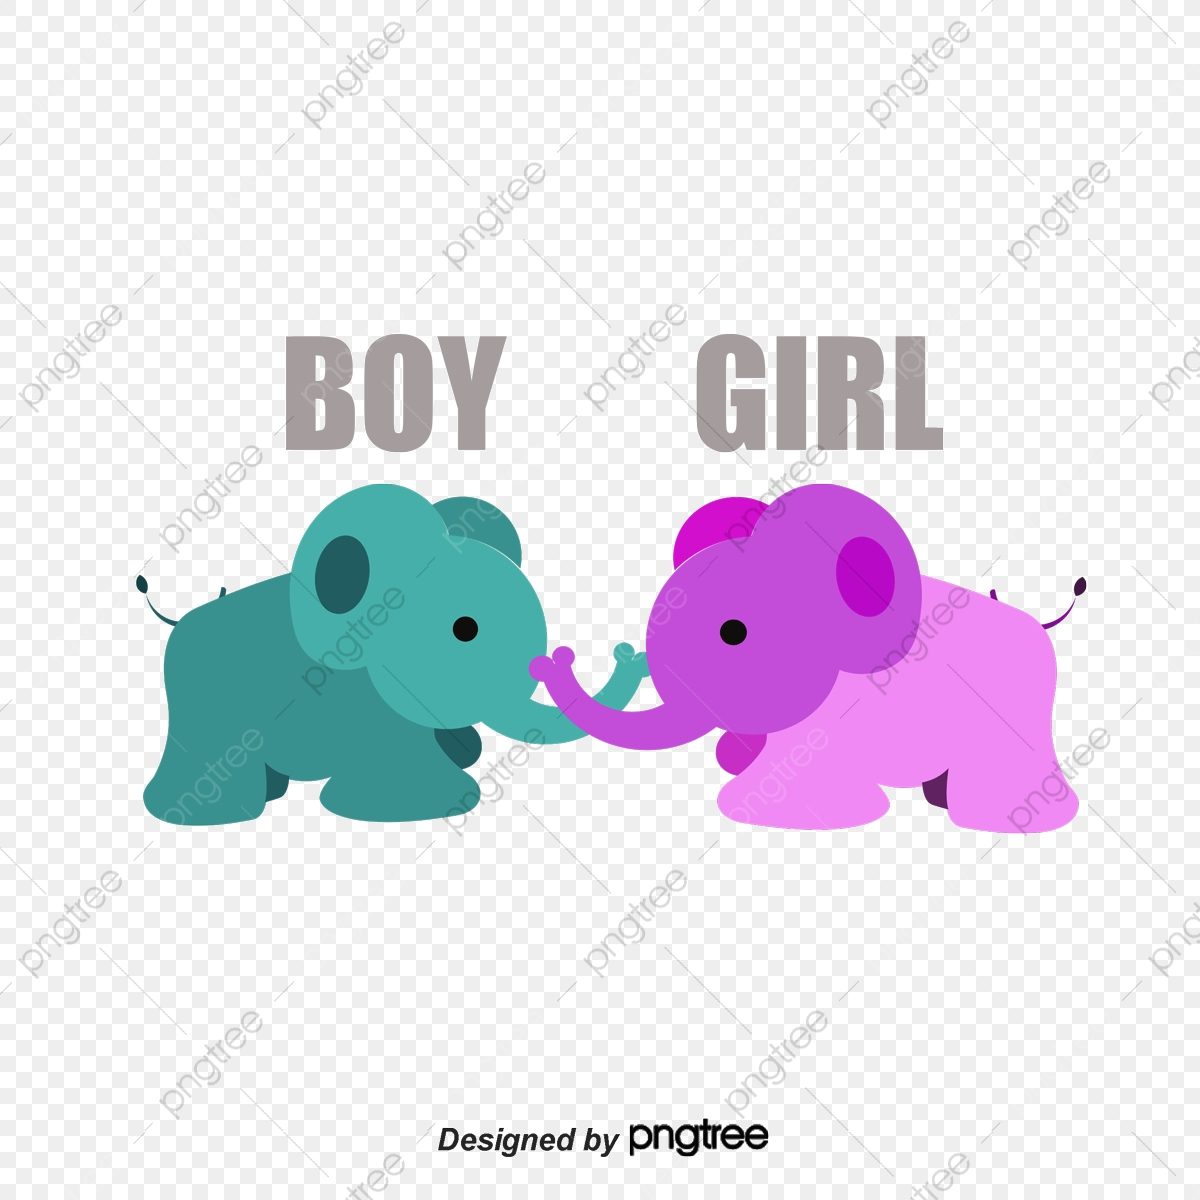 Blue Pink Elephant Elephant Clipart Vector Material Blue Elephant Png Transparent Clipart Image And Psd File For Free Download The image is png format and has been processed into transparent background by ps tool. https pngtree com freepng blue pink elephant 3008523 html